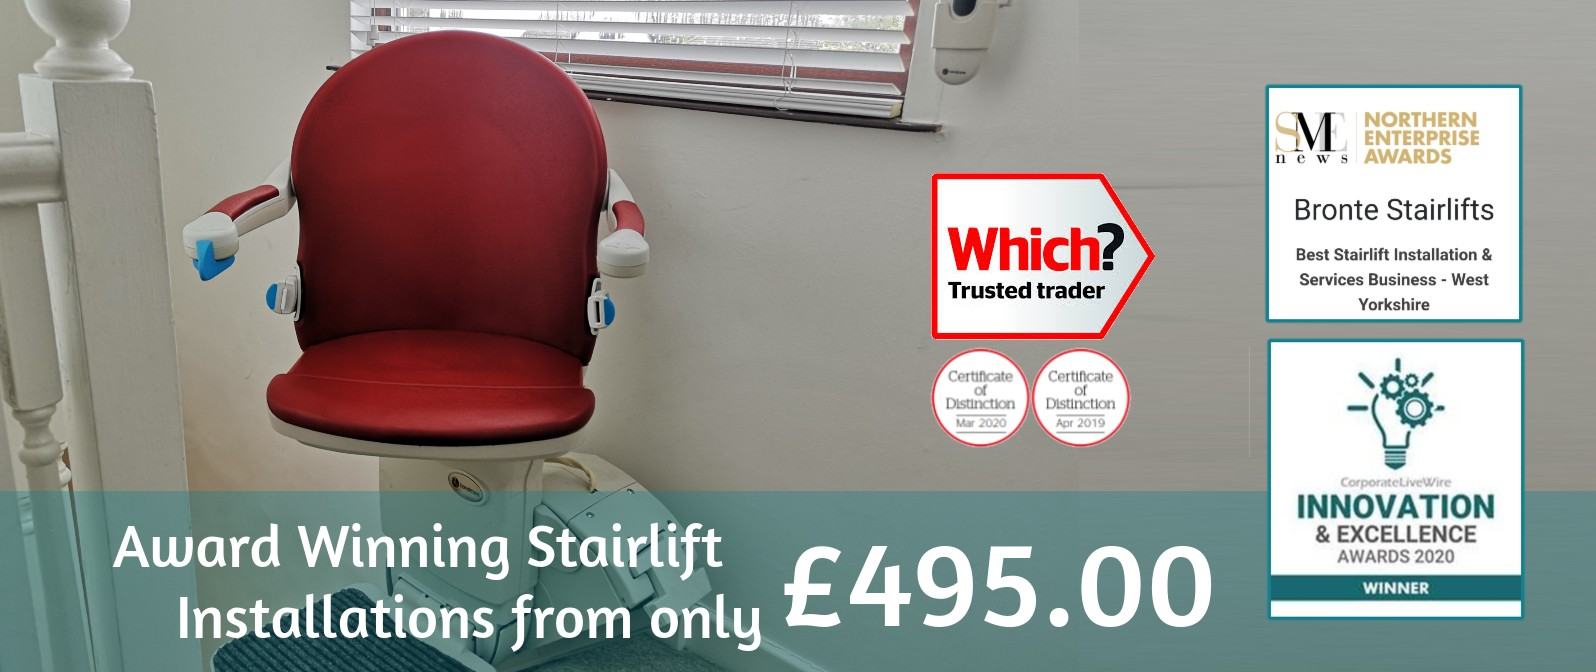 Award winning stairlifts from only £495